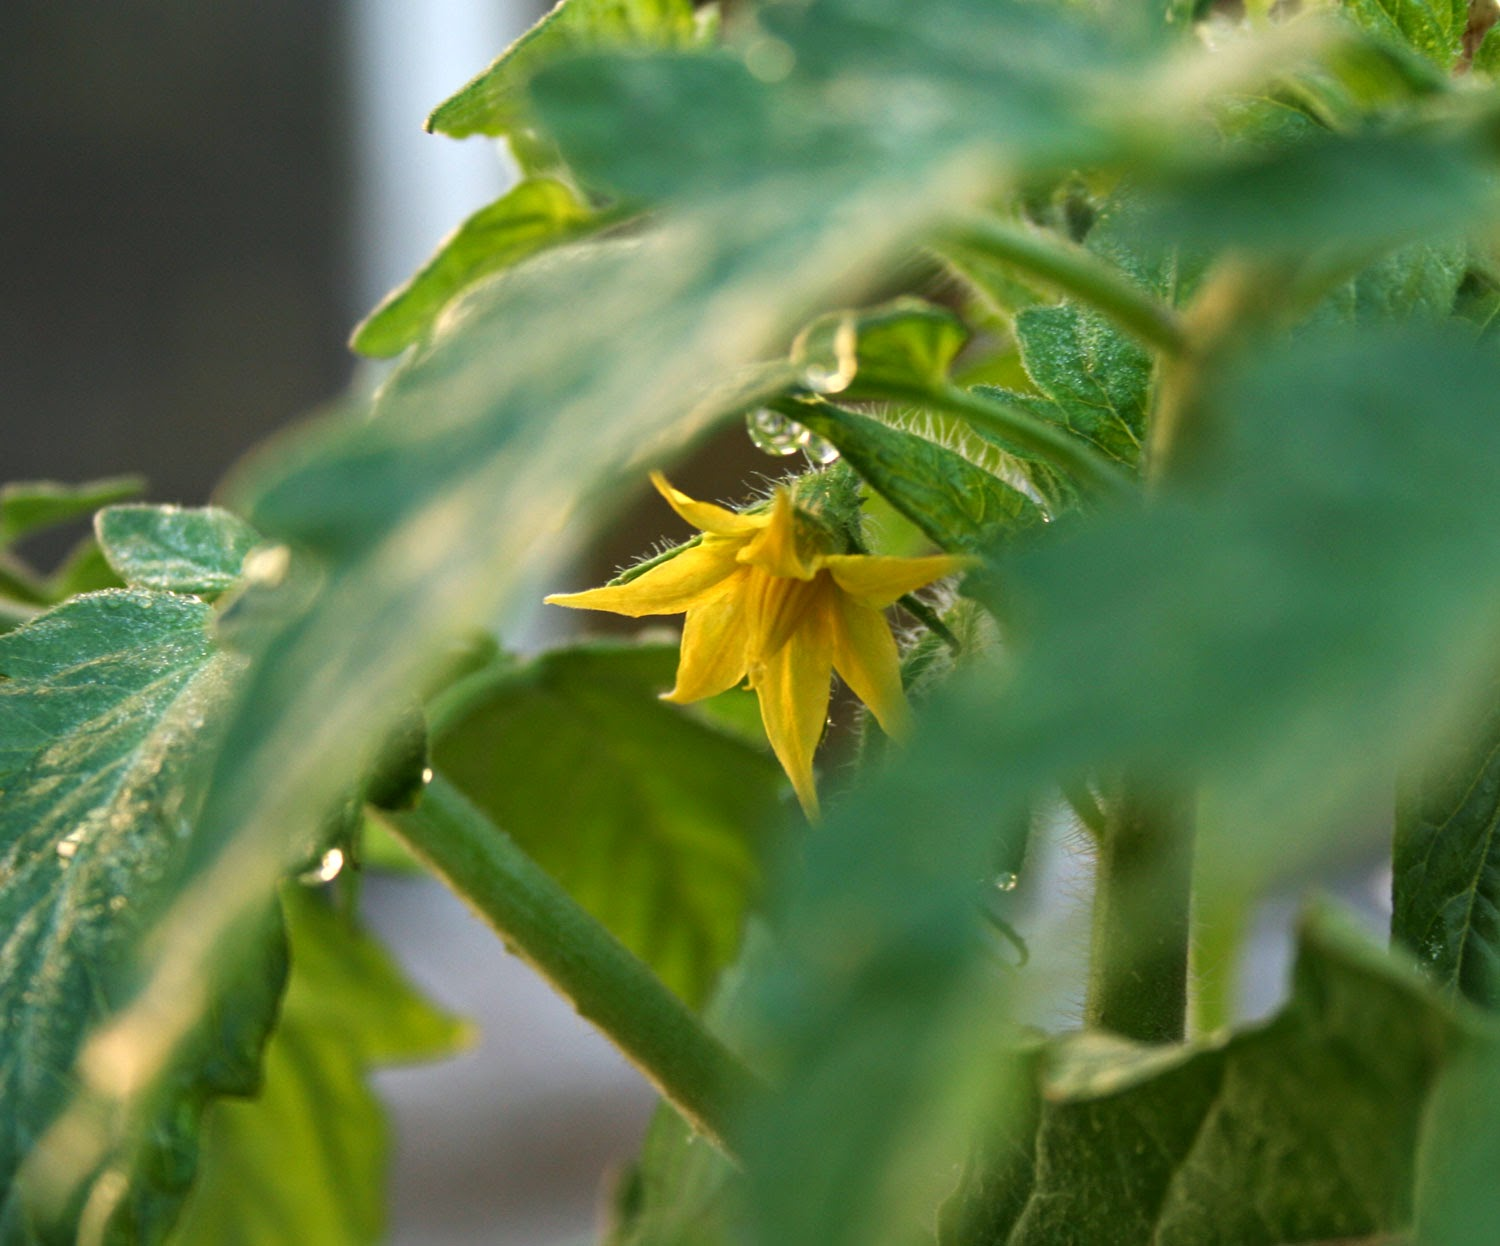 The first Tomato flower